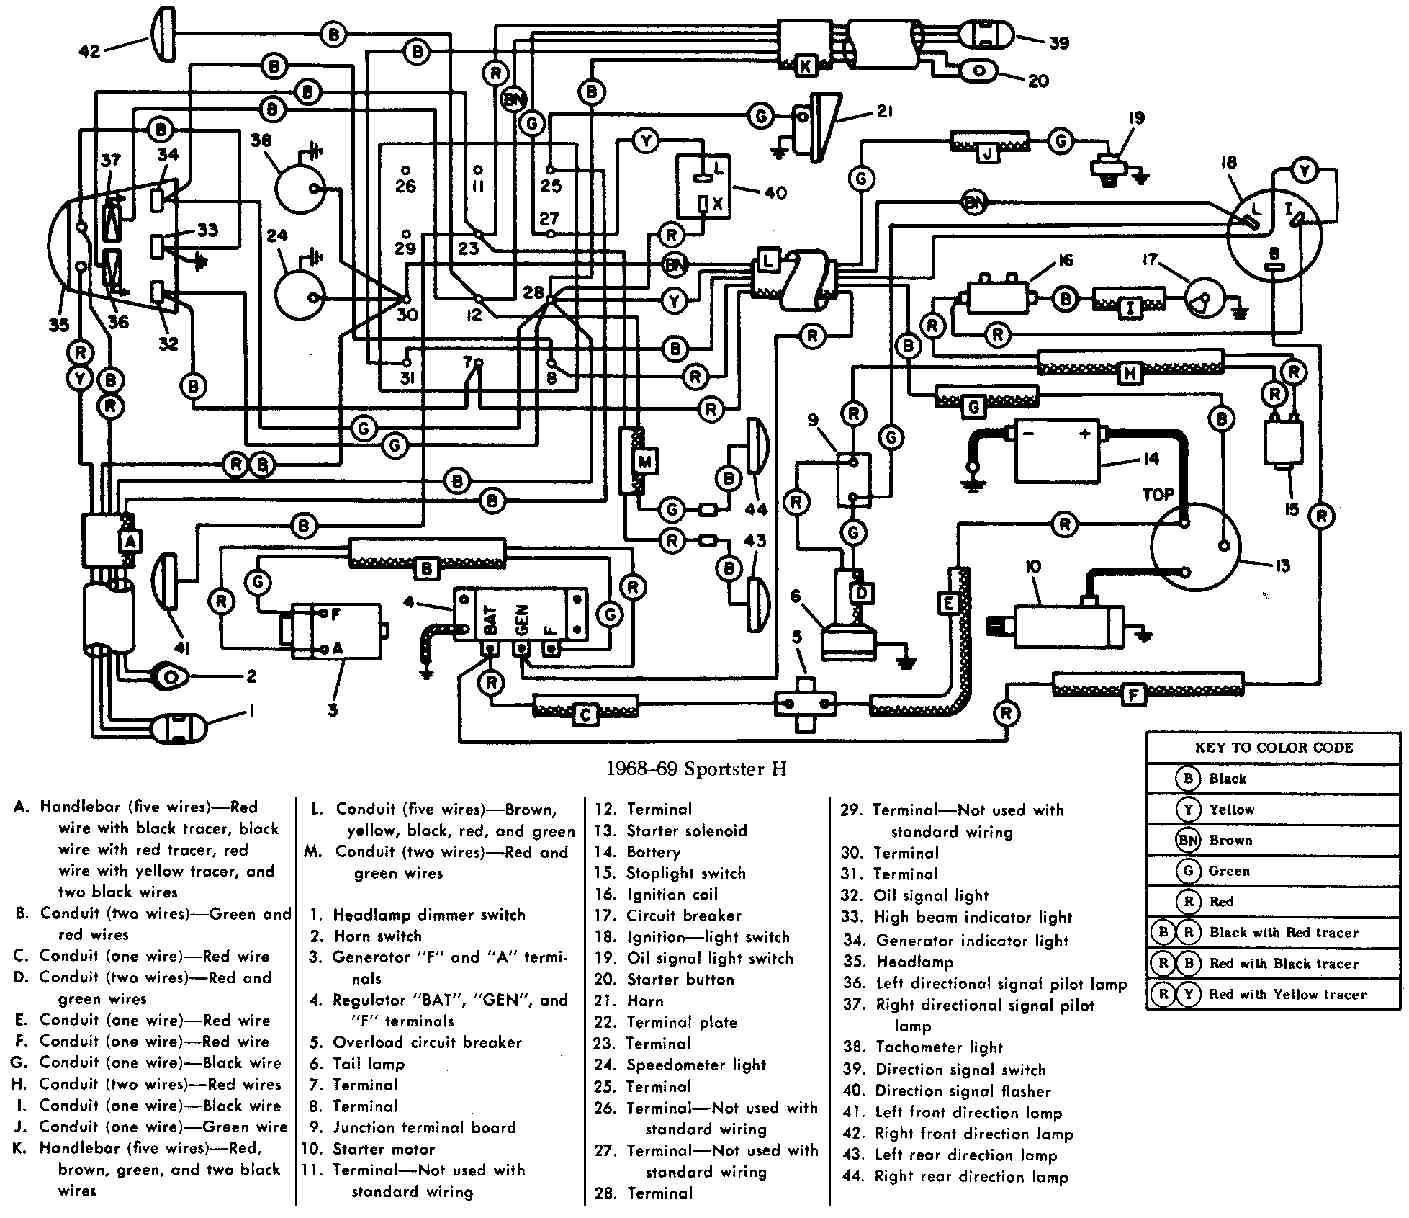 Hot Rod Wiring Diagram Download : 31 Wiring Diagram Images